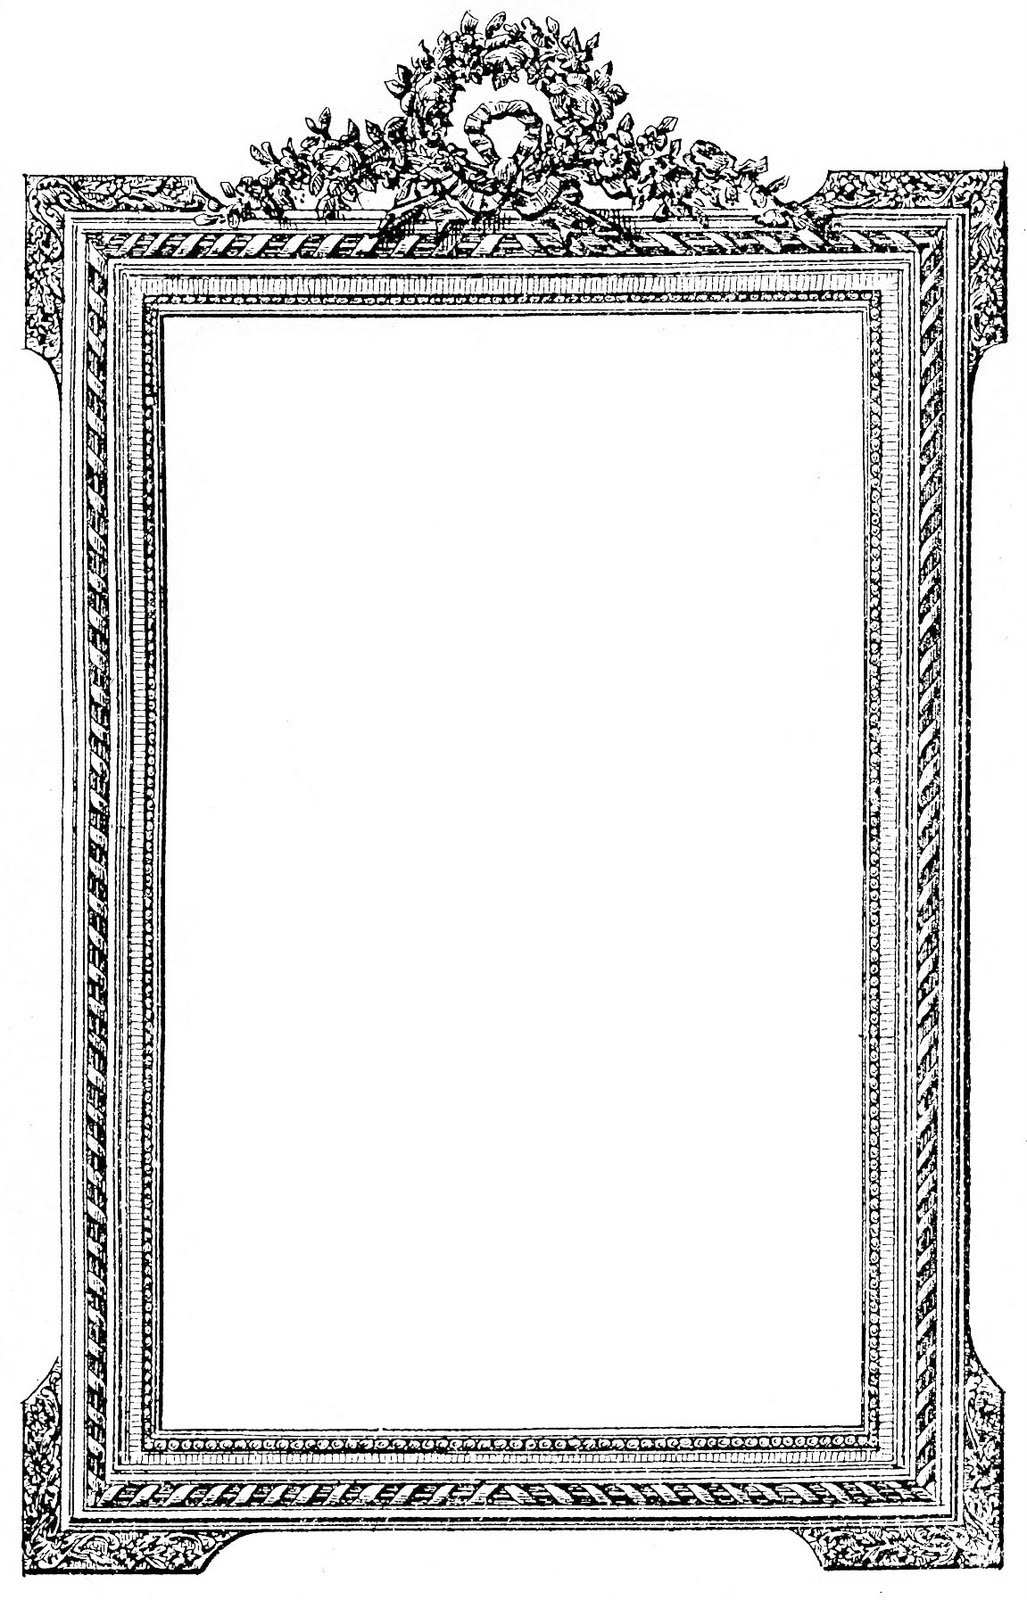 Fancy picture frame clipart clip art freeuse download 24 Frame Clipart - Fancy and Ornate - Updated! - The Graphics Fairy clip art freeuse download